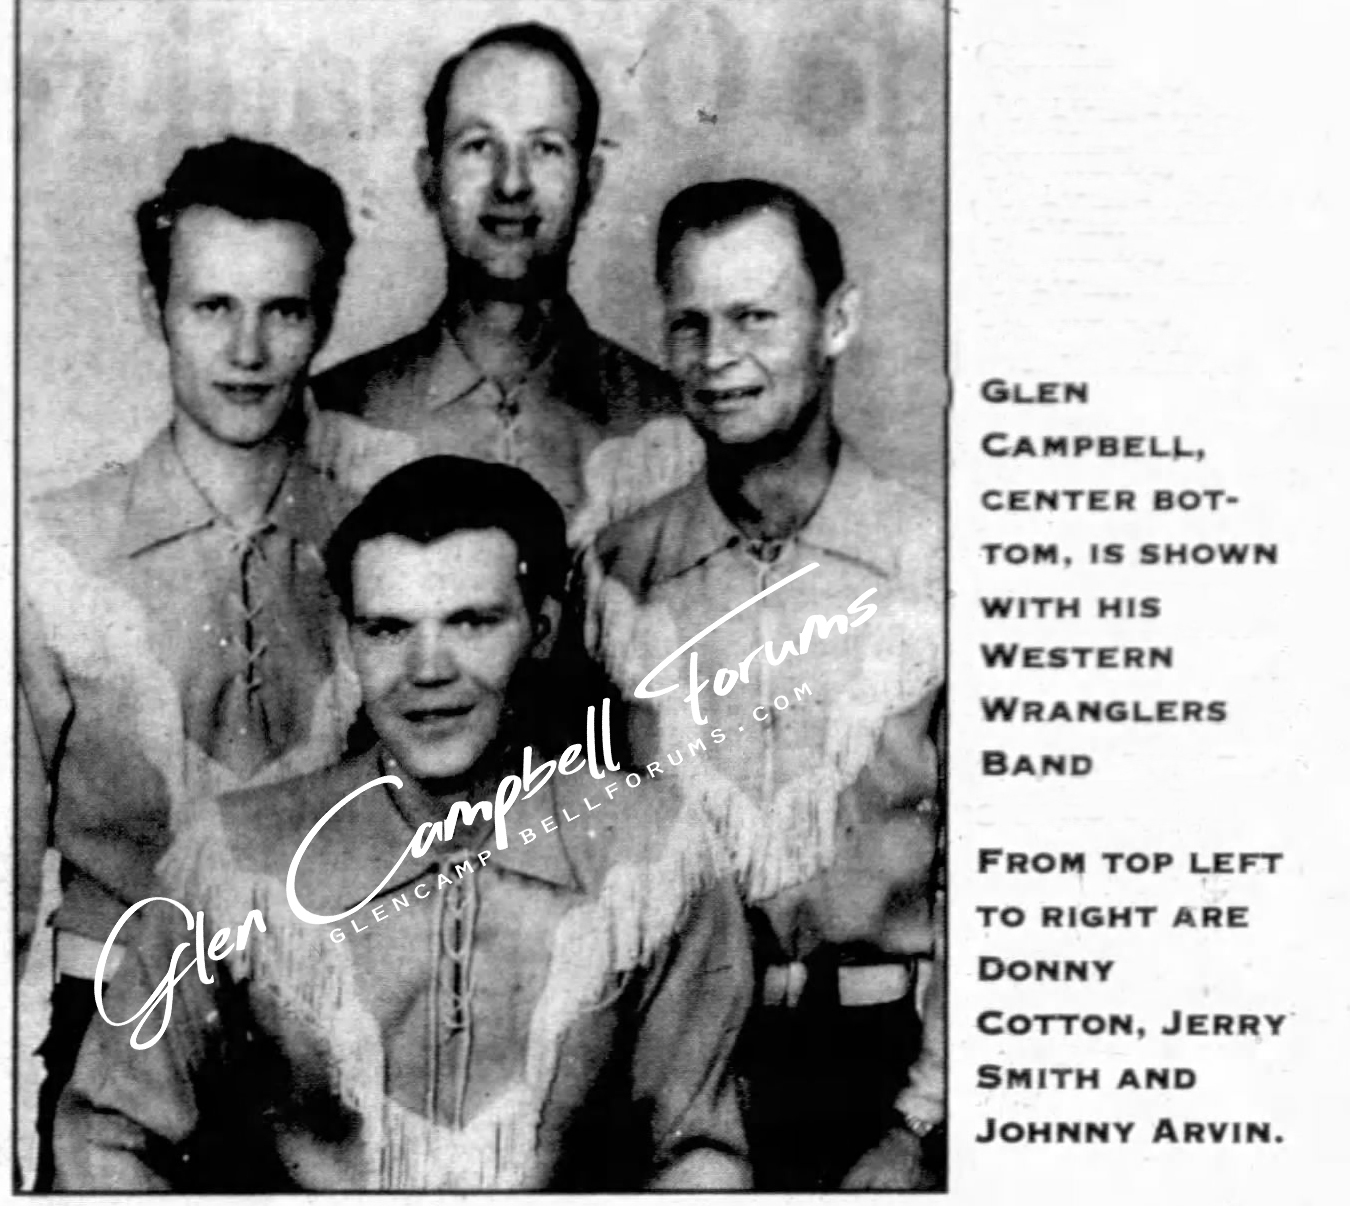 Glen Campbell and the Western Wranglers Forum edit.jpg